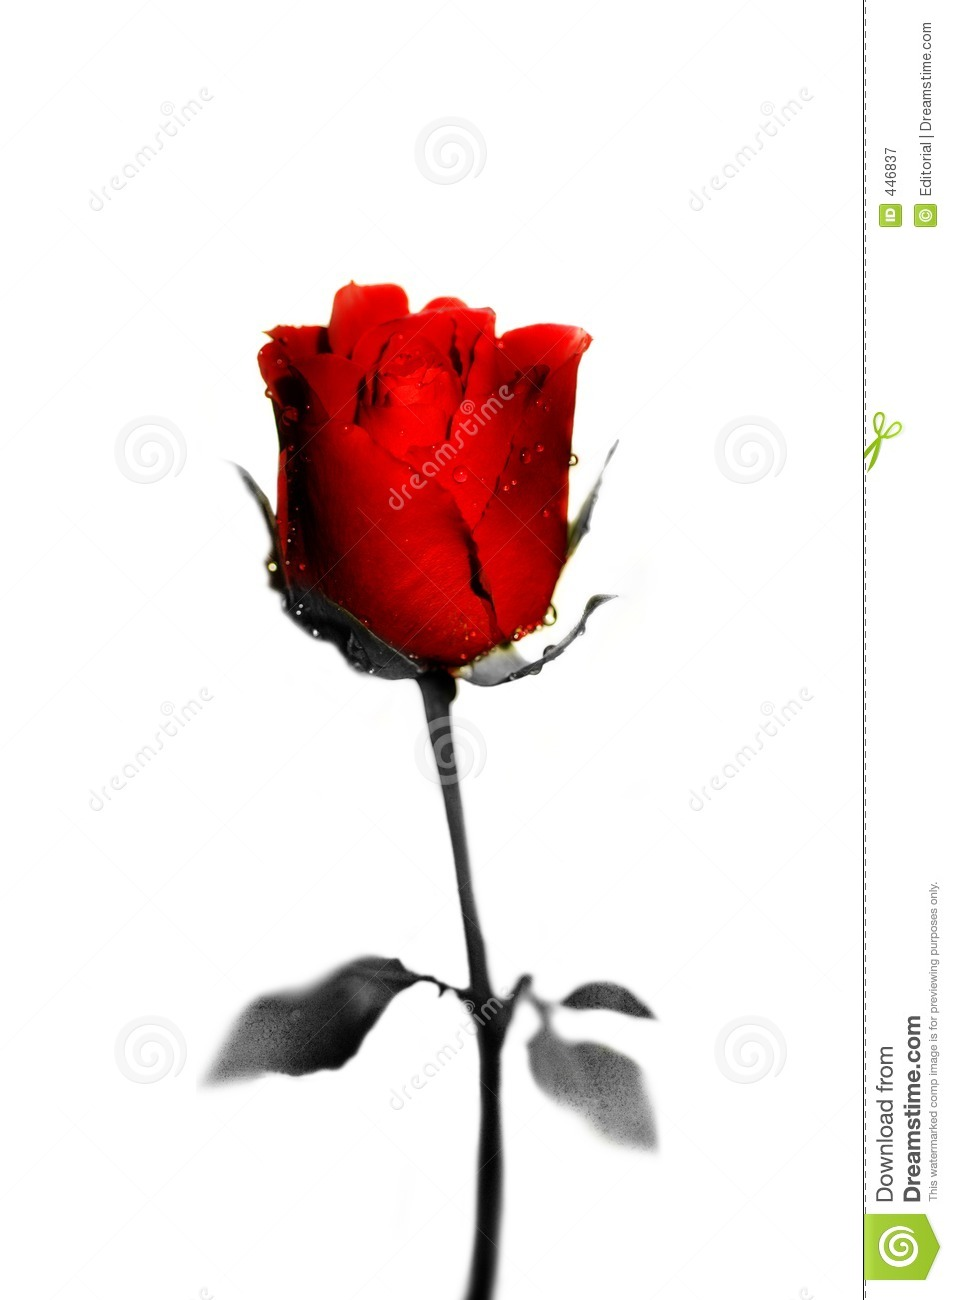 Royalty Free Stock Photography: Red rose. Image: 446837